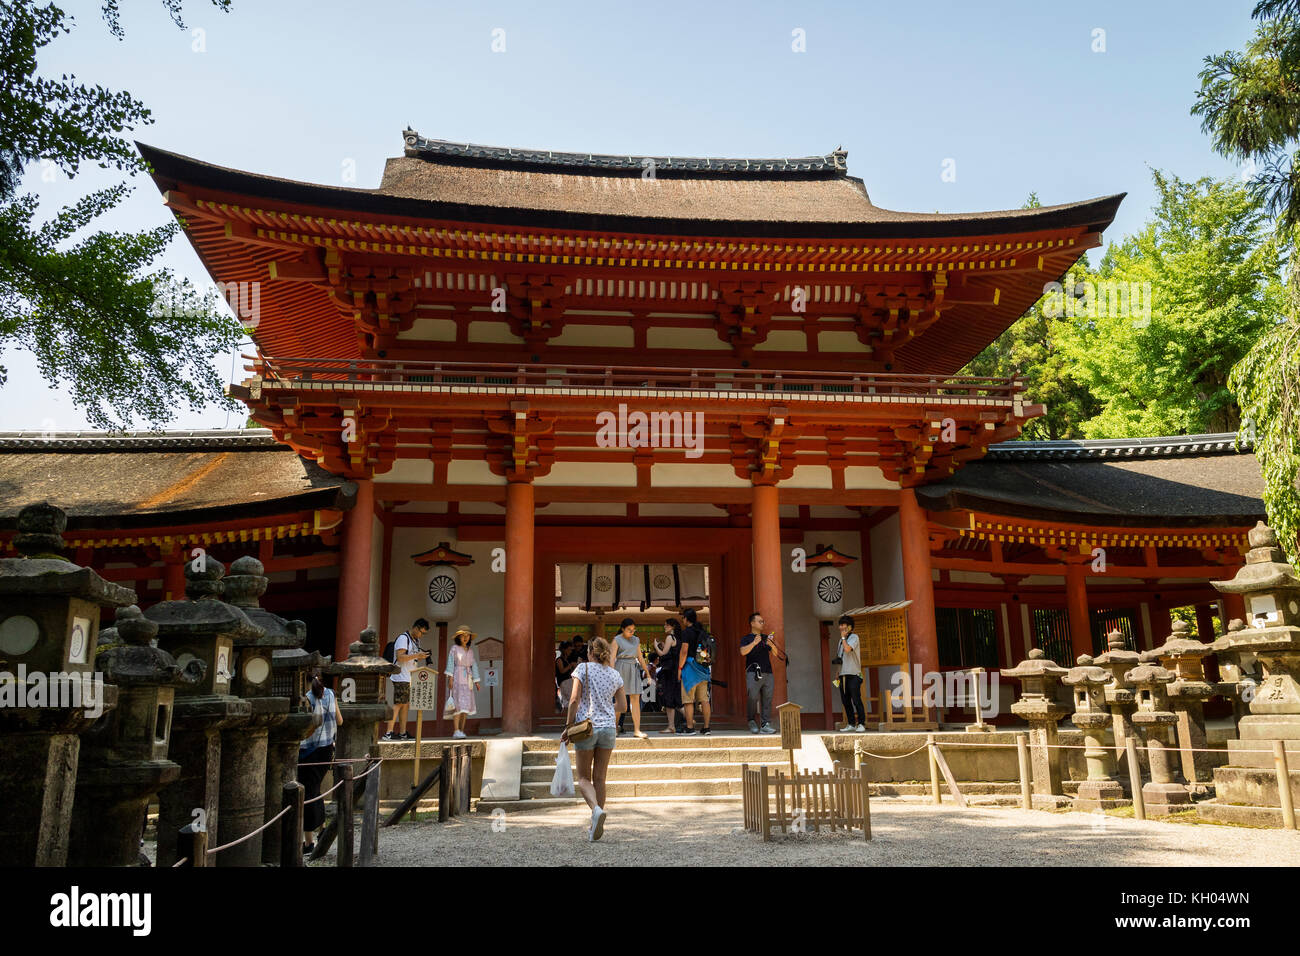 Nara - Japan, May 29, 2017: Entrance to the Kasuga Taisha shrine, registered as a UNESCO World Heritage Site as - Stock Image